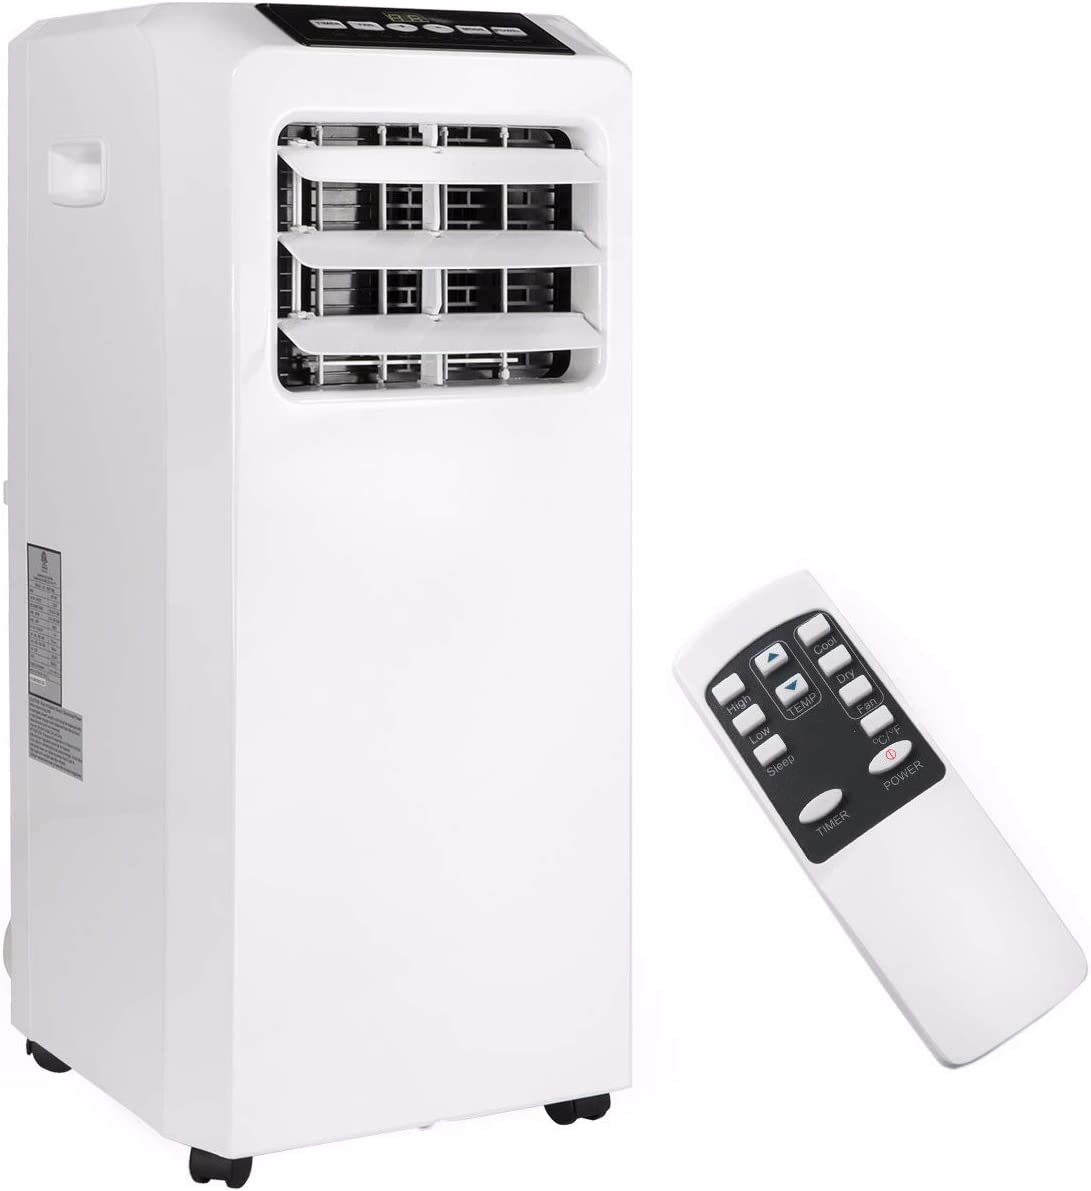 Barton 8,000 BTU 4in1 Portable Air Conditioner Dehumidifier Fan A/C Cooling for Rooms up to 250 Sq. ft with Remote Control Kit